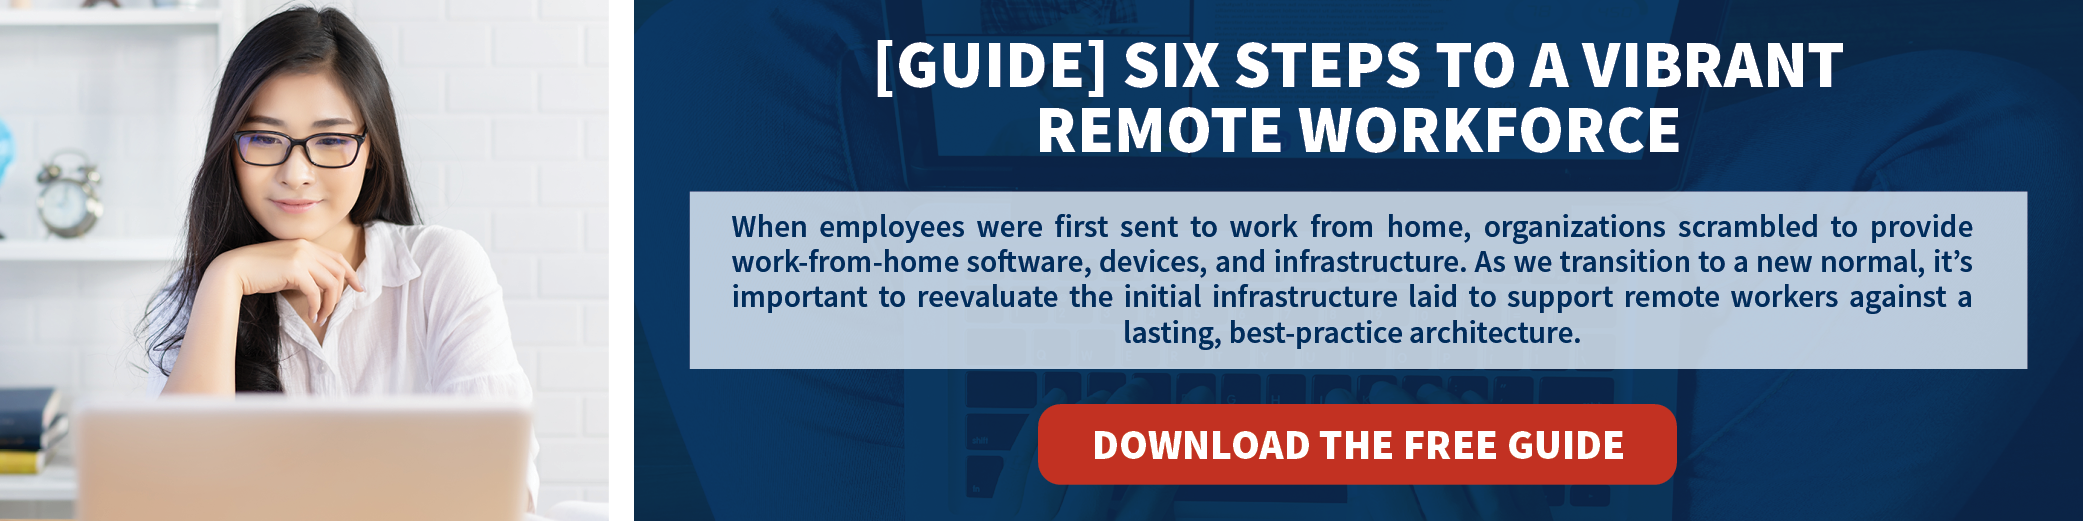 Remote Workforce Guide - Website Banner